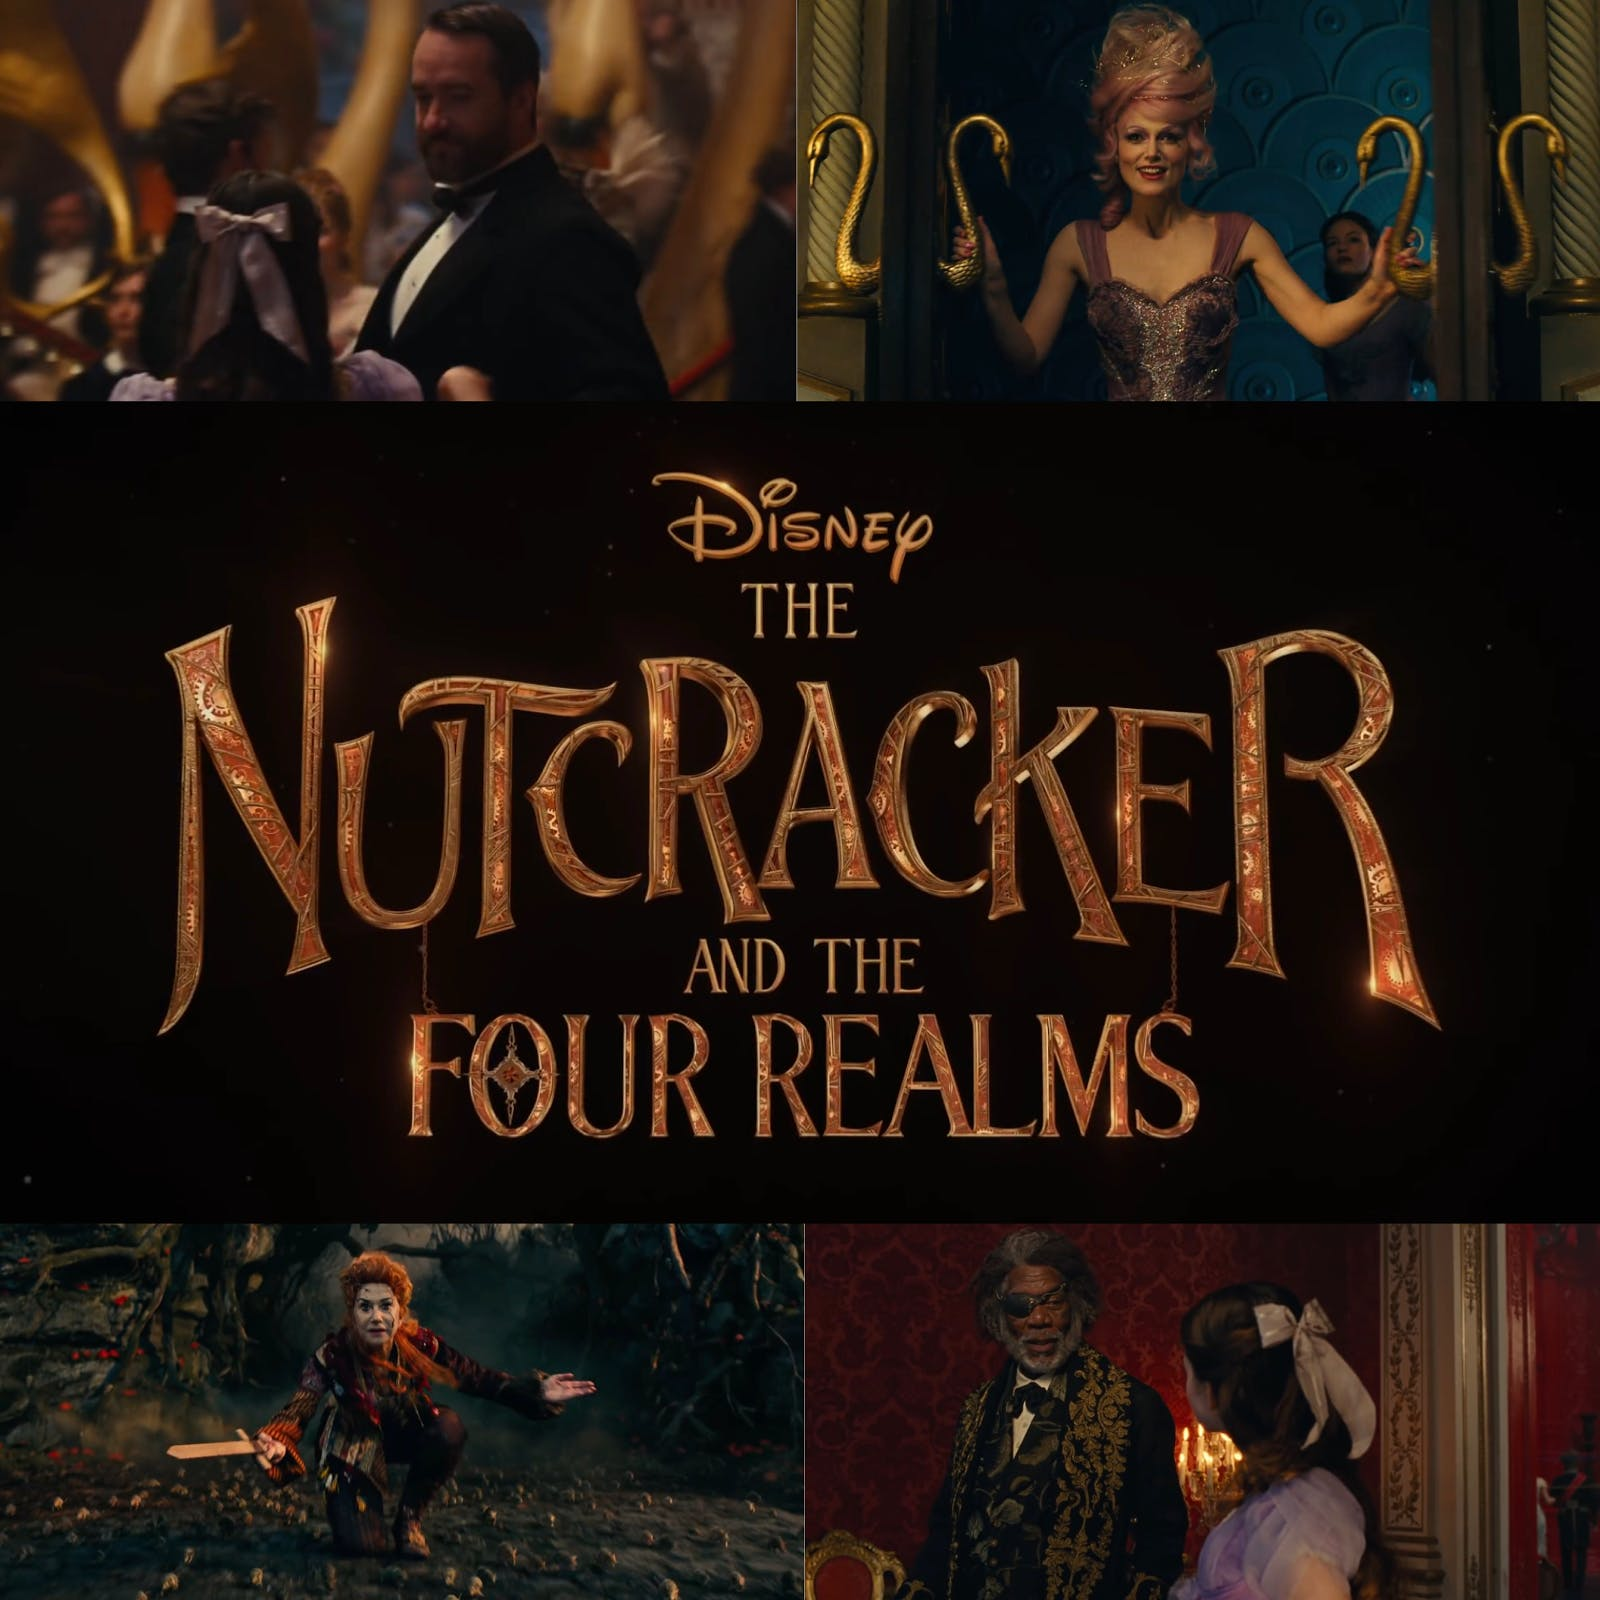 Client Appreciation Private Movie Screening of The Nutcracker and the Four Realms